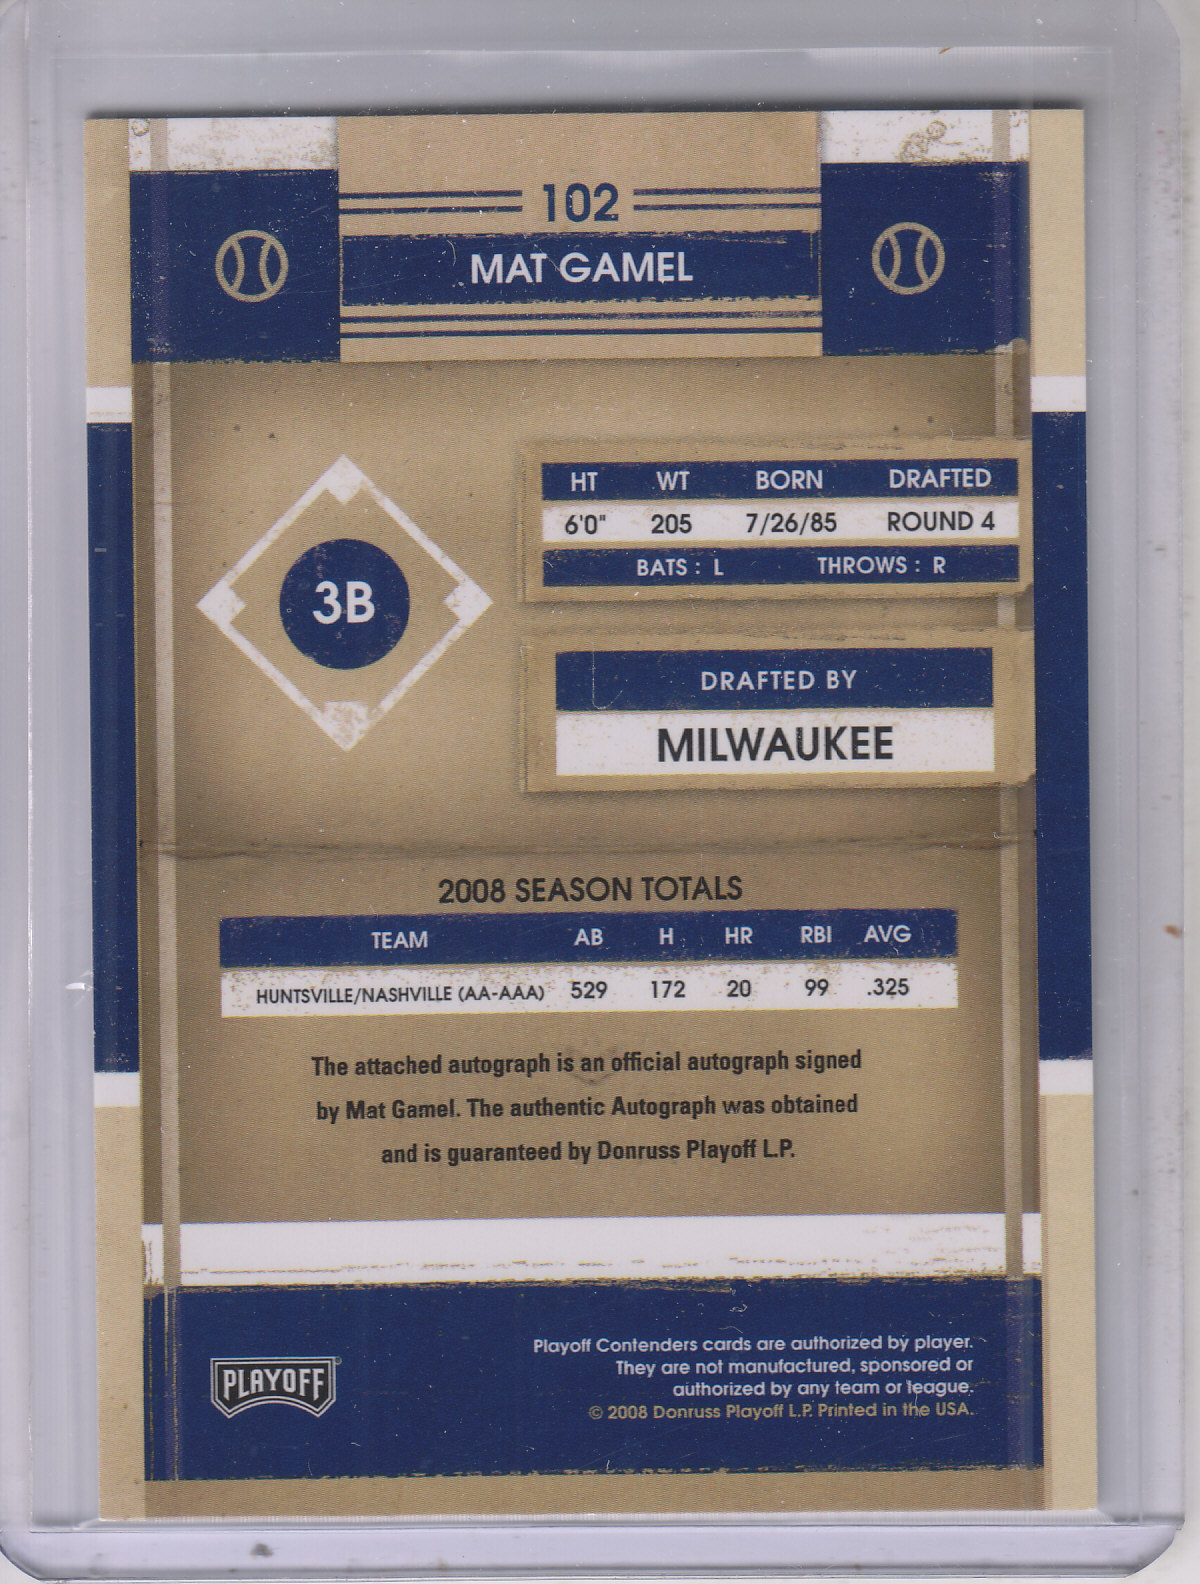 2008 Playoff Contenders #102 Mat Gamel AU back image